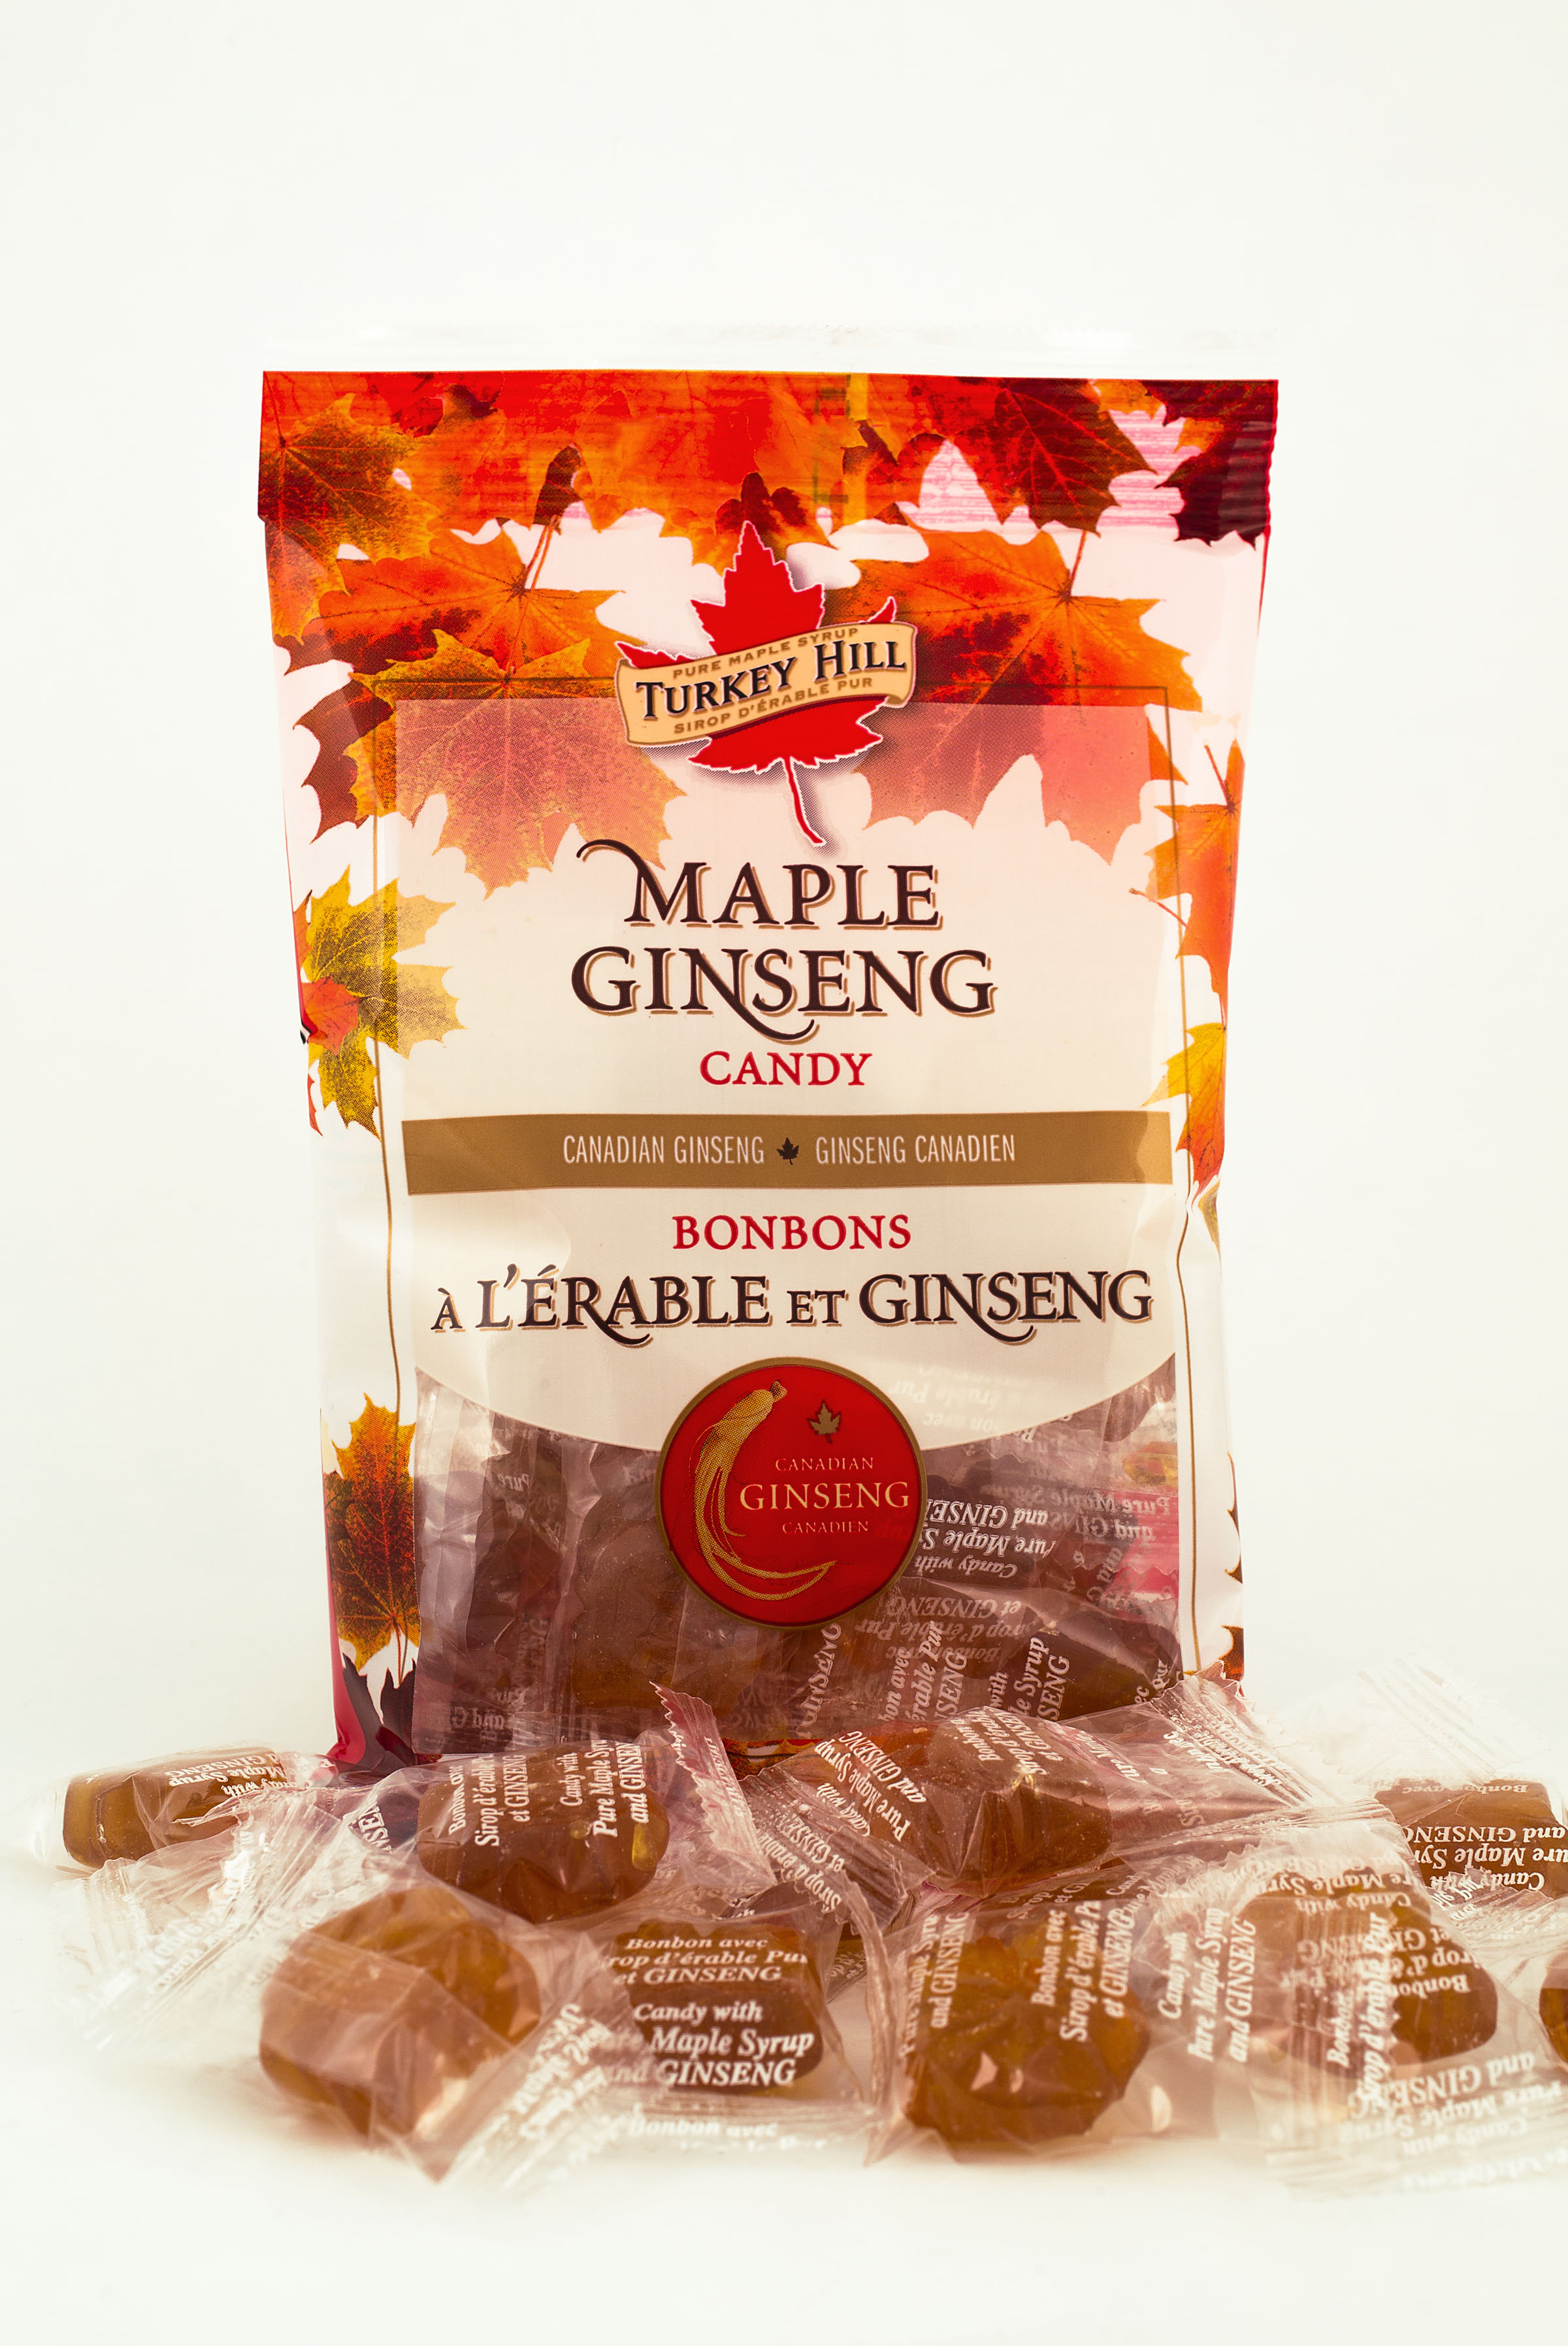 Maple Ginseng Candy